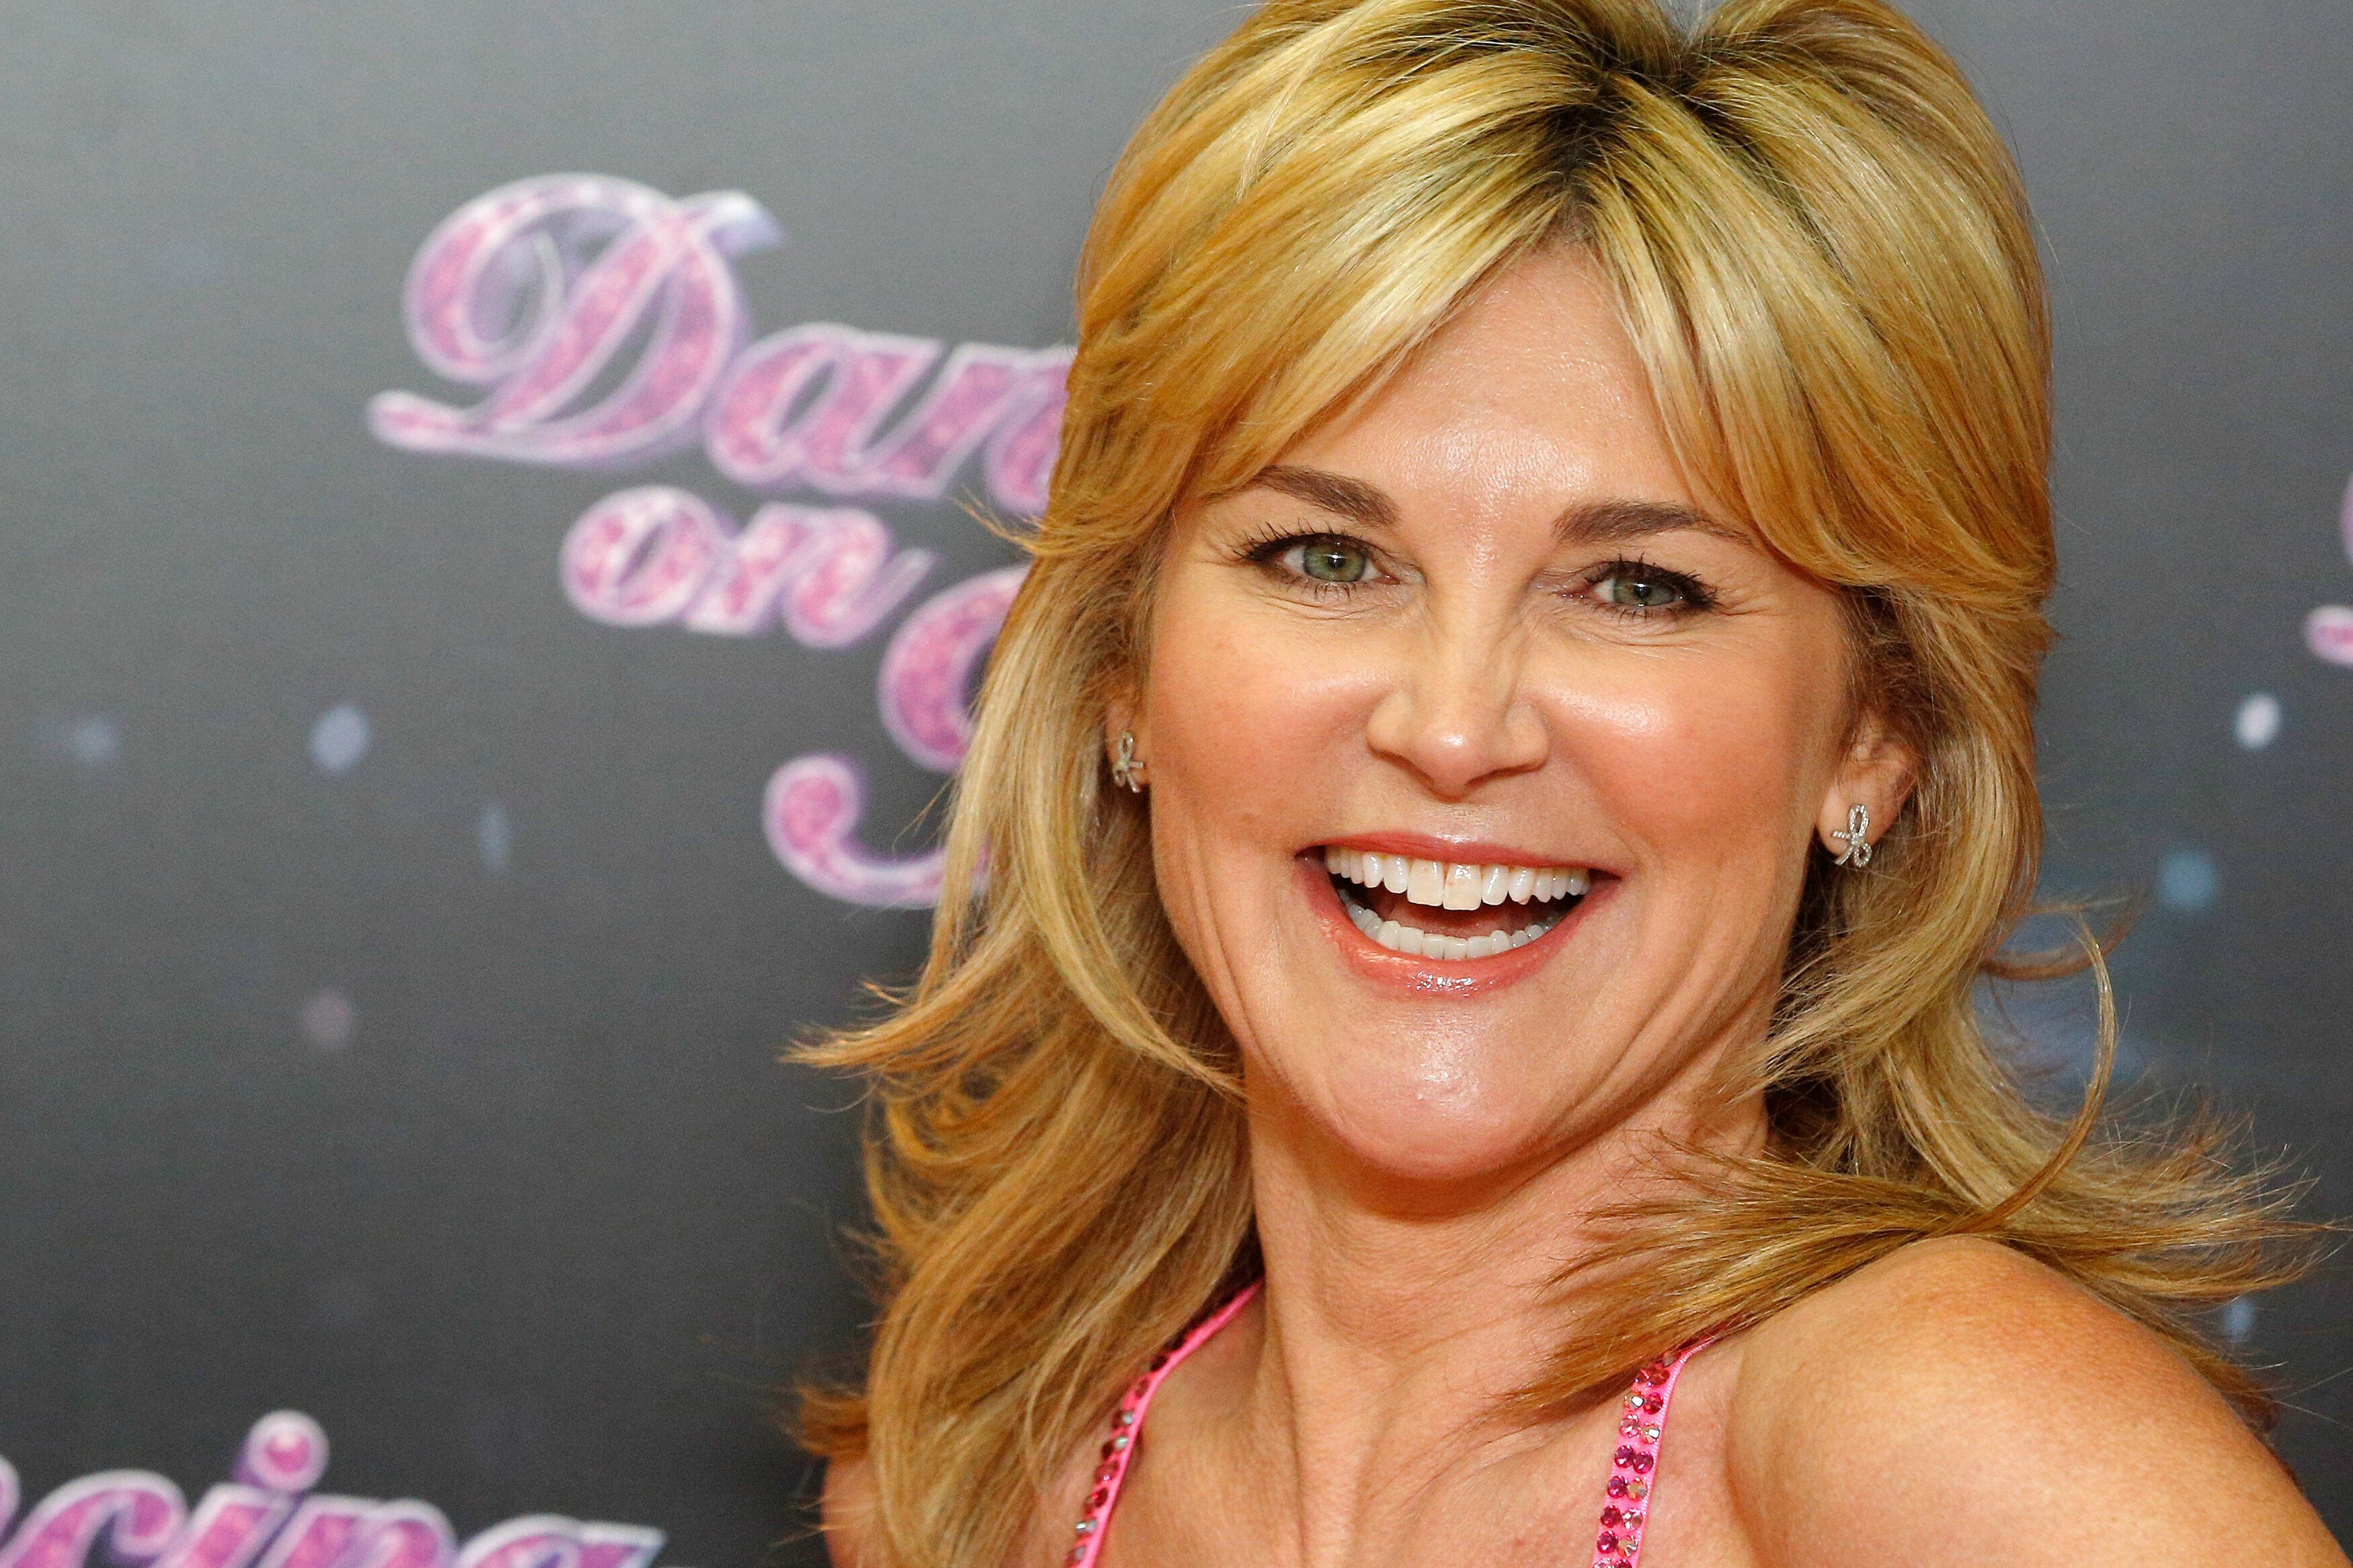 TV presenter Anthea Turner seen at the Dancing on Ice Photocall at at The London Television Centre on Thursday, Jan. 3, 2013, in London. (Photo by Miles Willis/Invision/AP)